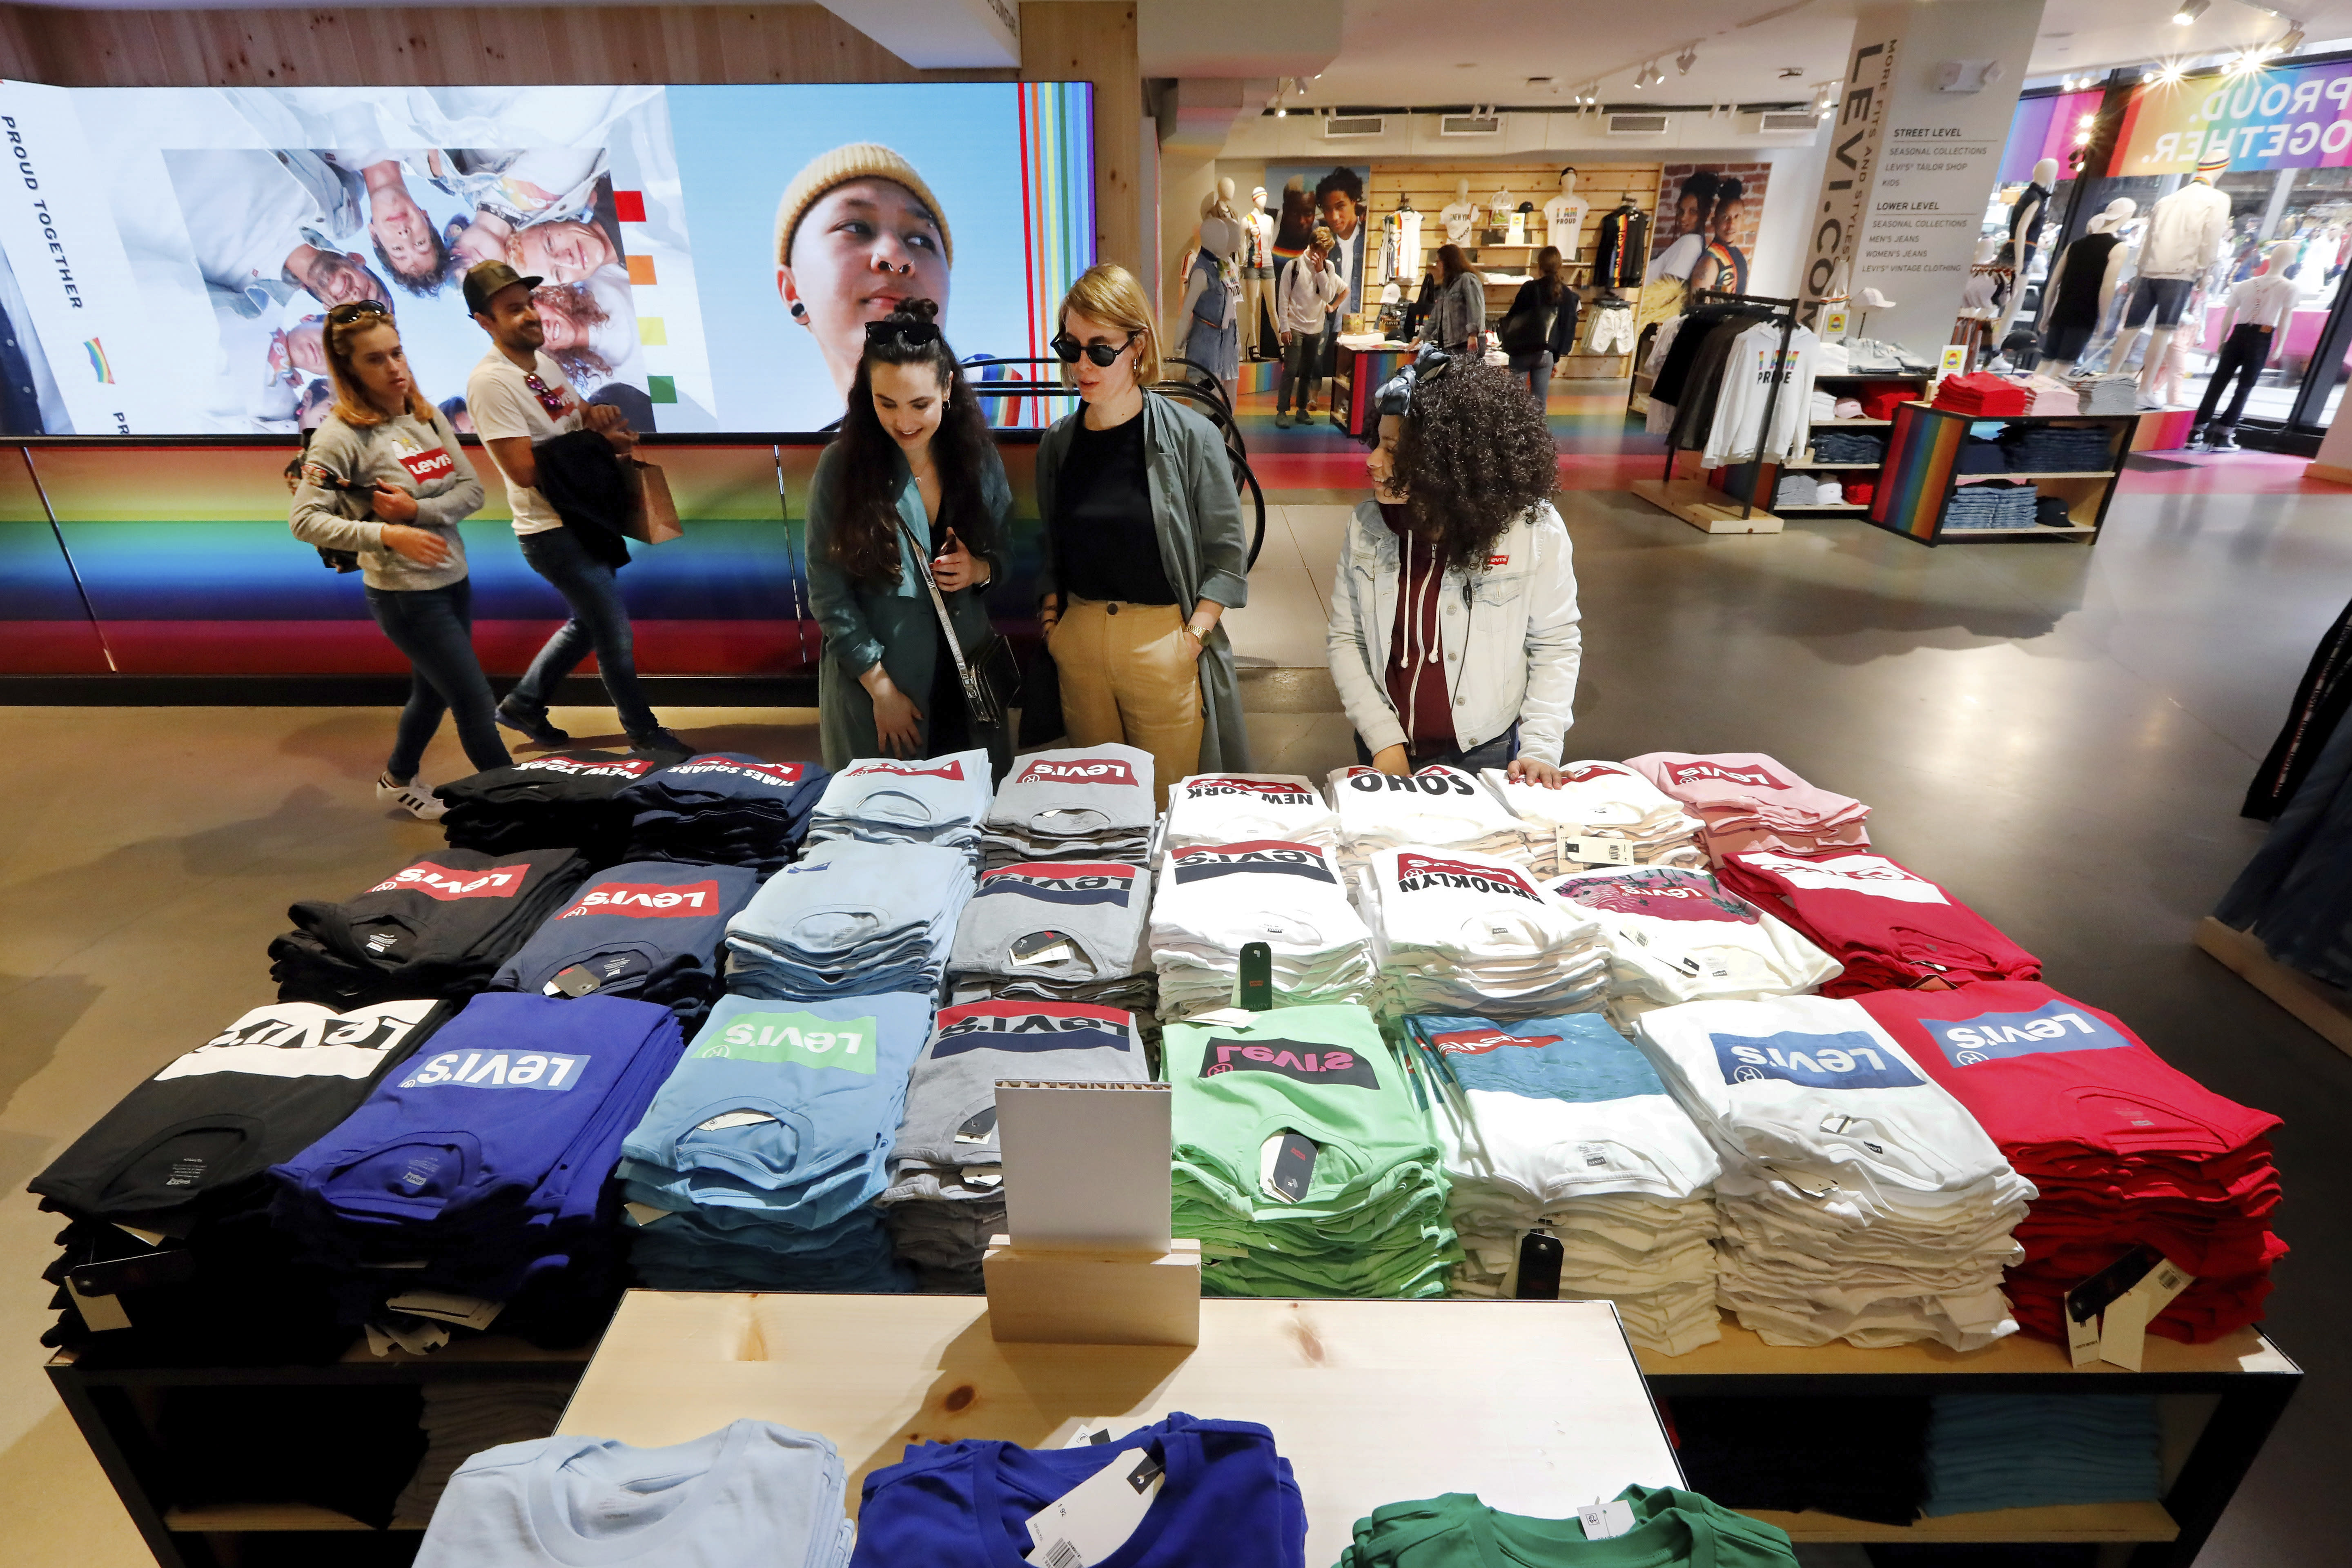 FILE- In this June 14, 2019, file photo a pair of shoppers, center, in the Levi's store in New York's Times Square, survey a T-shirt display. On Tuesday, Aug. 13, the Labor Department reports on U.S. consumer prices for July. (AP Photo/Richard Drew, File)